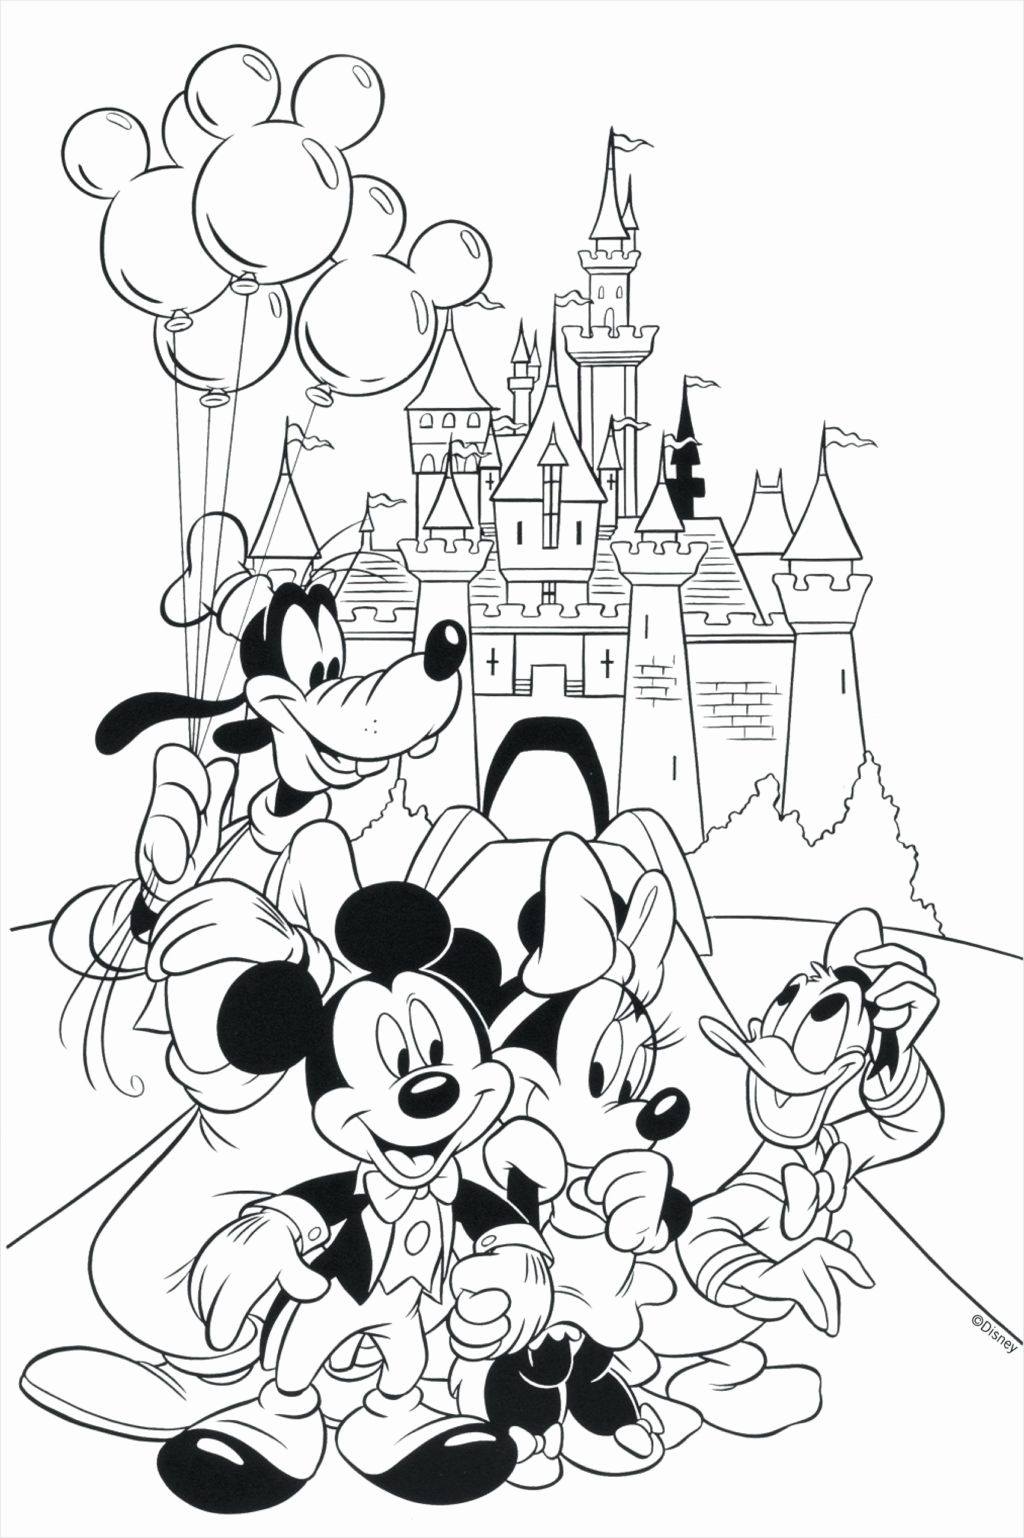 Holiday Coloring Sheets Free Awesome Coloring Summer Fun Coloring Sheets And Amy For Disney Coloring Pages Cartoon Coloring Pages Mickey Mouse Coloring Pages